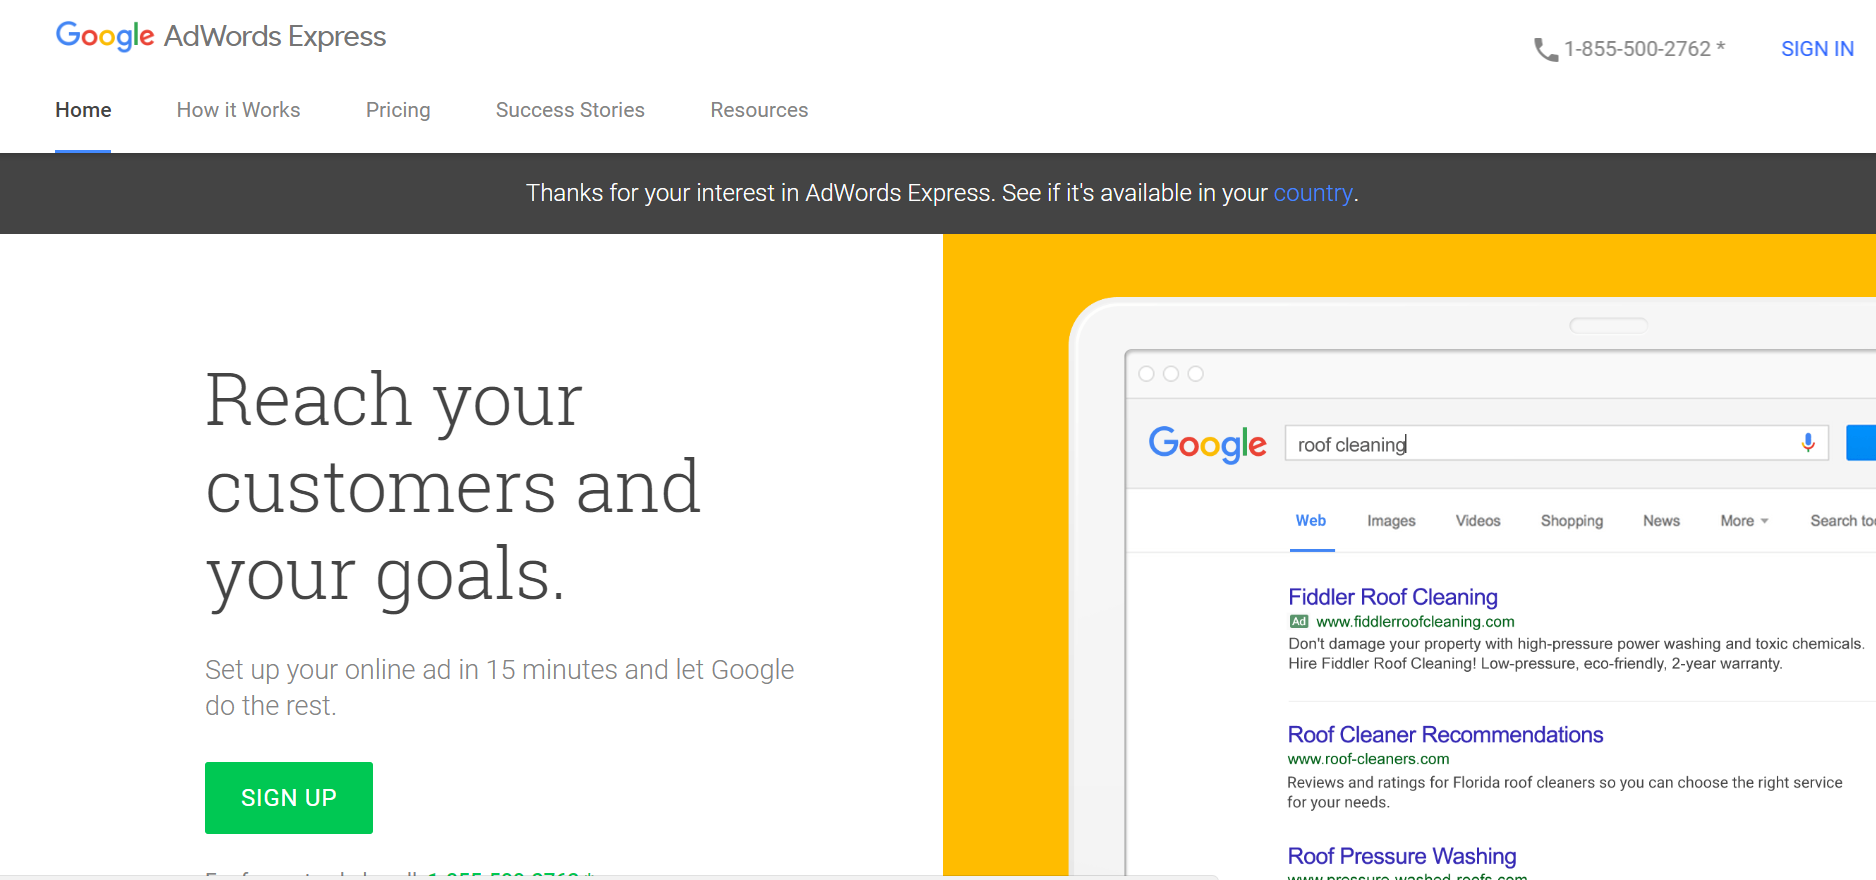 How to Use Google Adwords Express